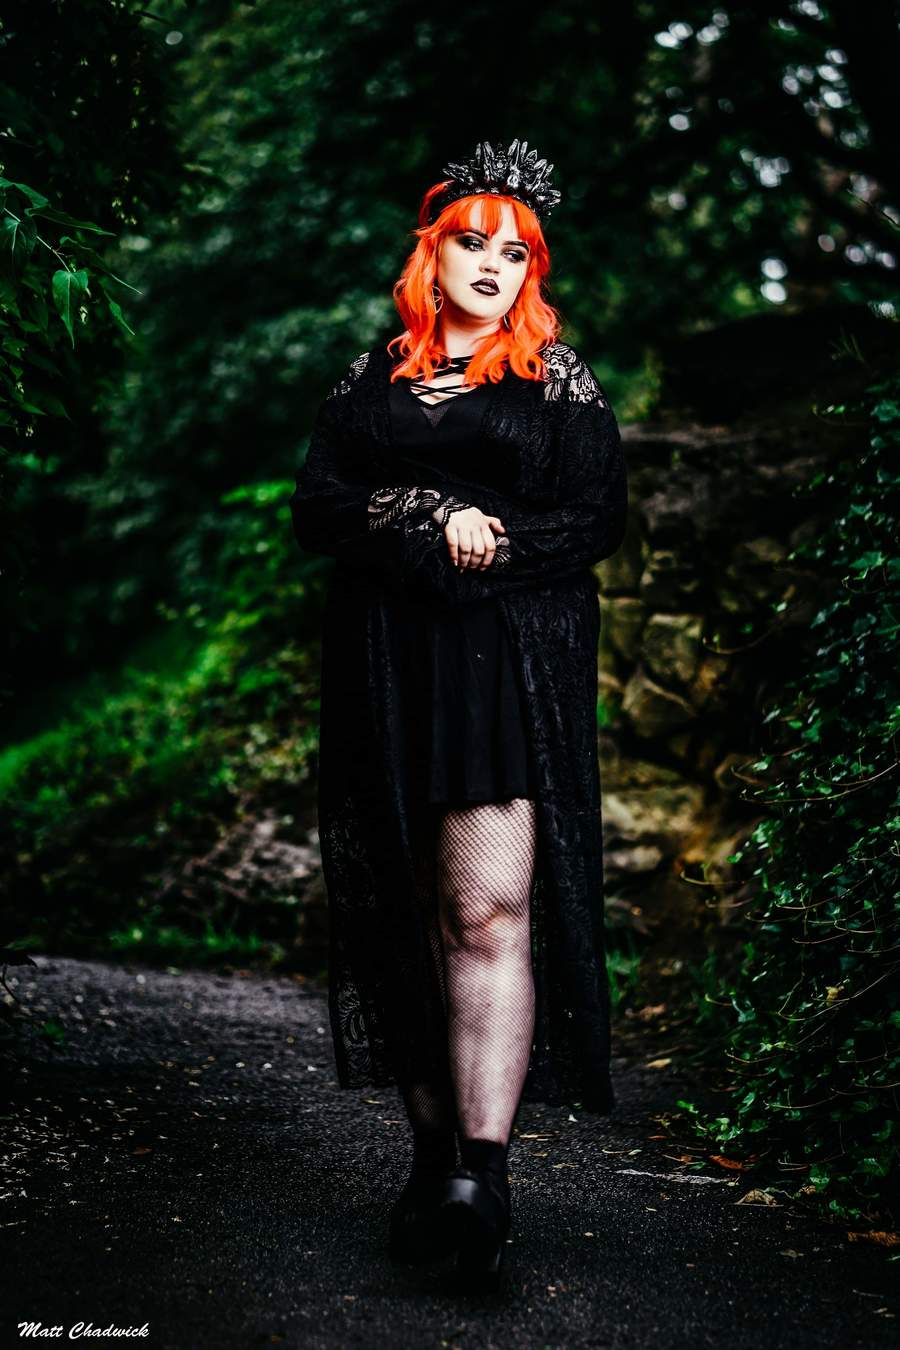 Photography by Matt Chadwick, Model OohLawLaw, Makeup by OohLawLaw / Uploaded 1st August 2019 @ 09:52 PM